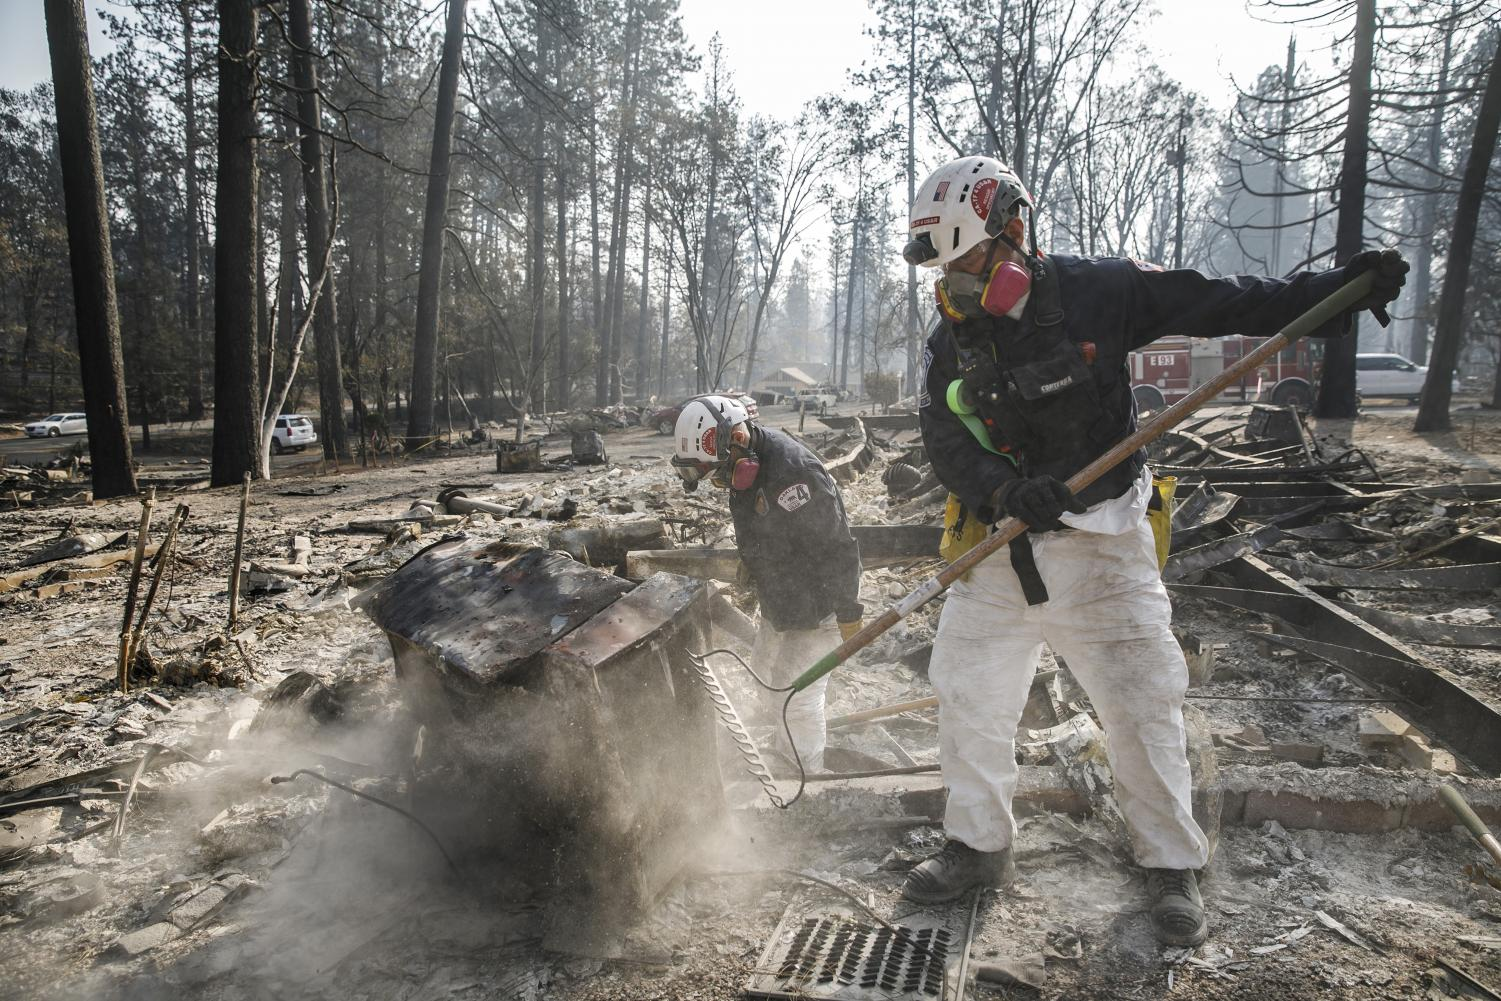 A search and rescue team comb through debris for human remains after the Camp Fire destroyed most of Paradise, Calif., on Nov. 20, 2018.